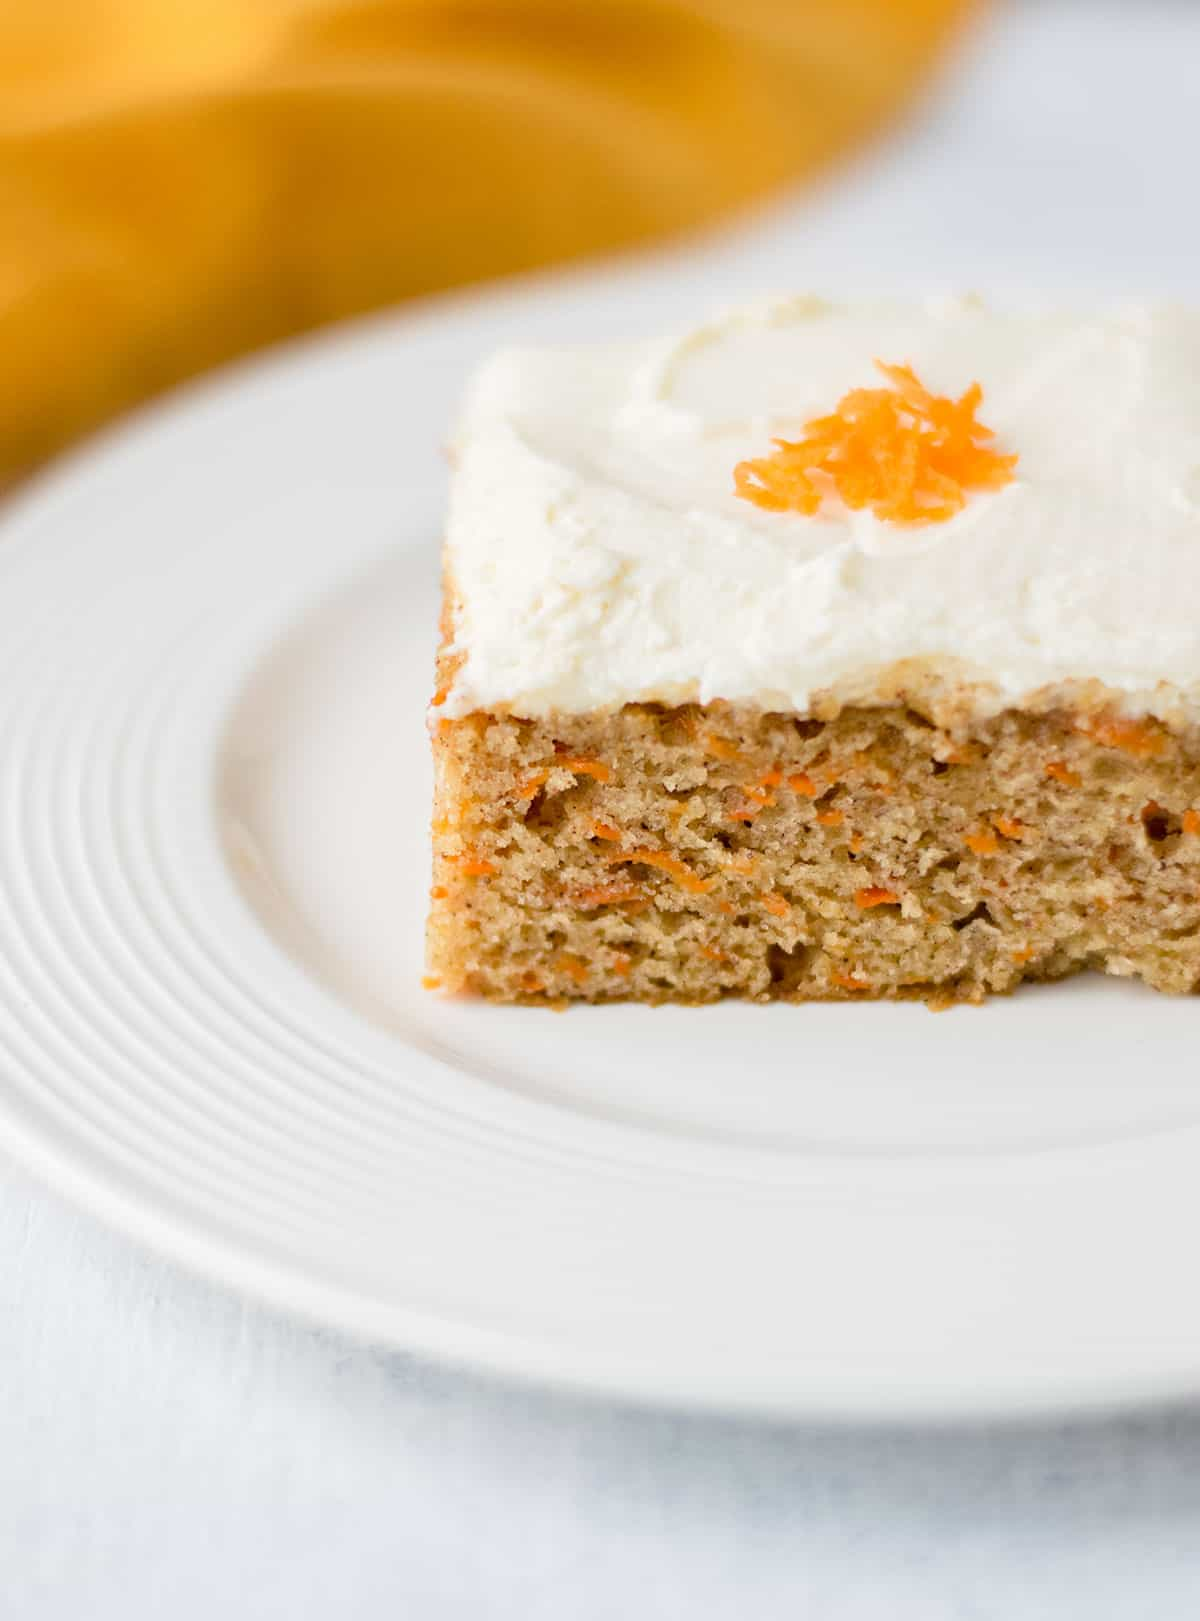 slice of square carrot cake on white plate